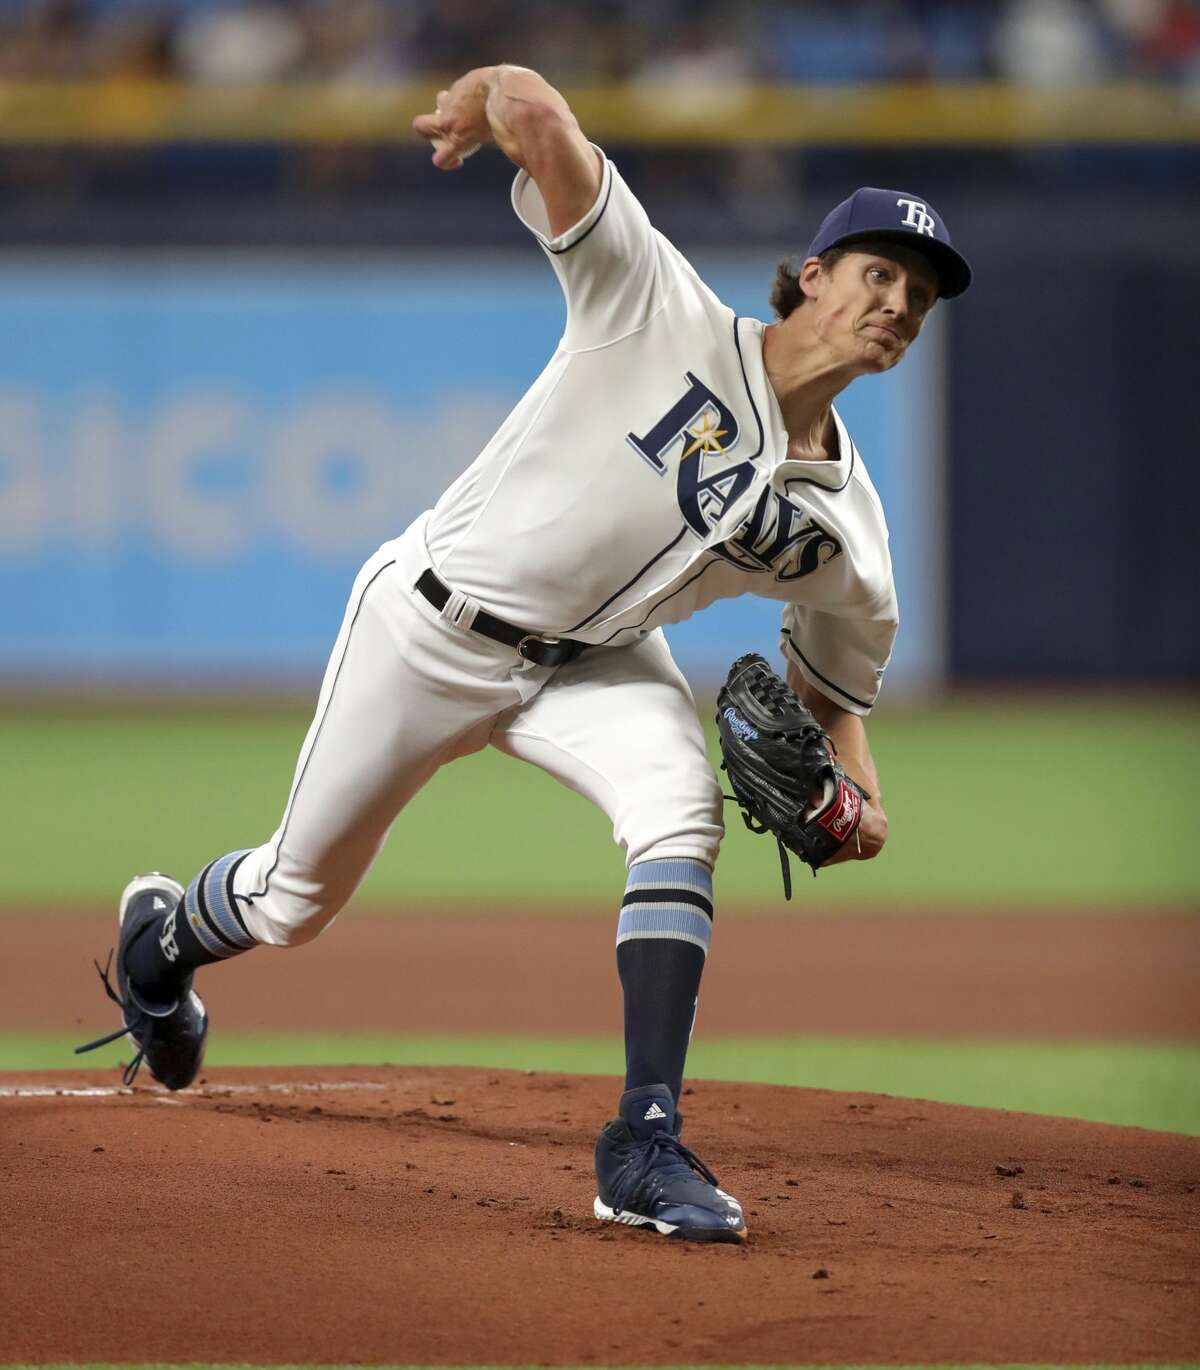 March 30:Rays 3, Astros 1 Record:1-2 Houston Chronicle's Player of the Game Tyler Glasnow W/ 5 IP/ 6 hits/ 1 ER/ 4 Ks/ 1 BB